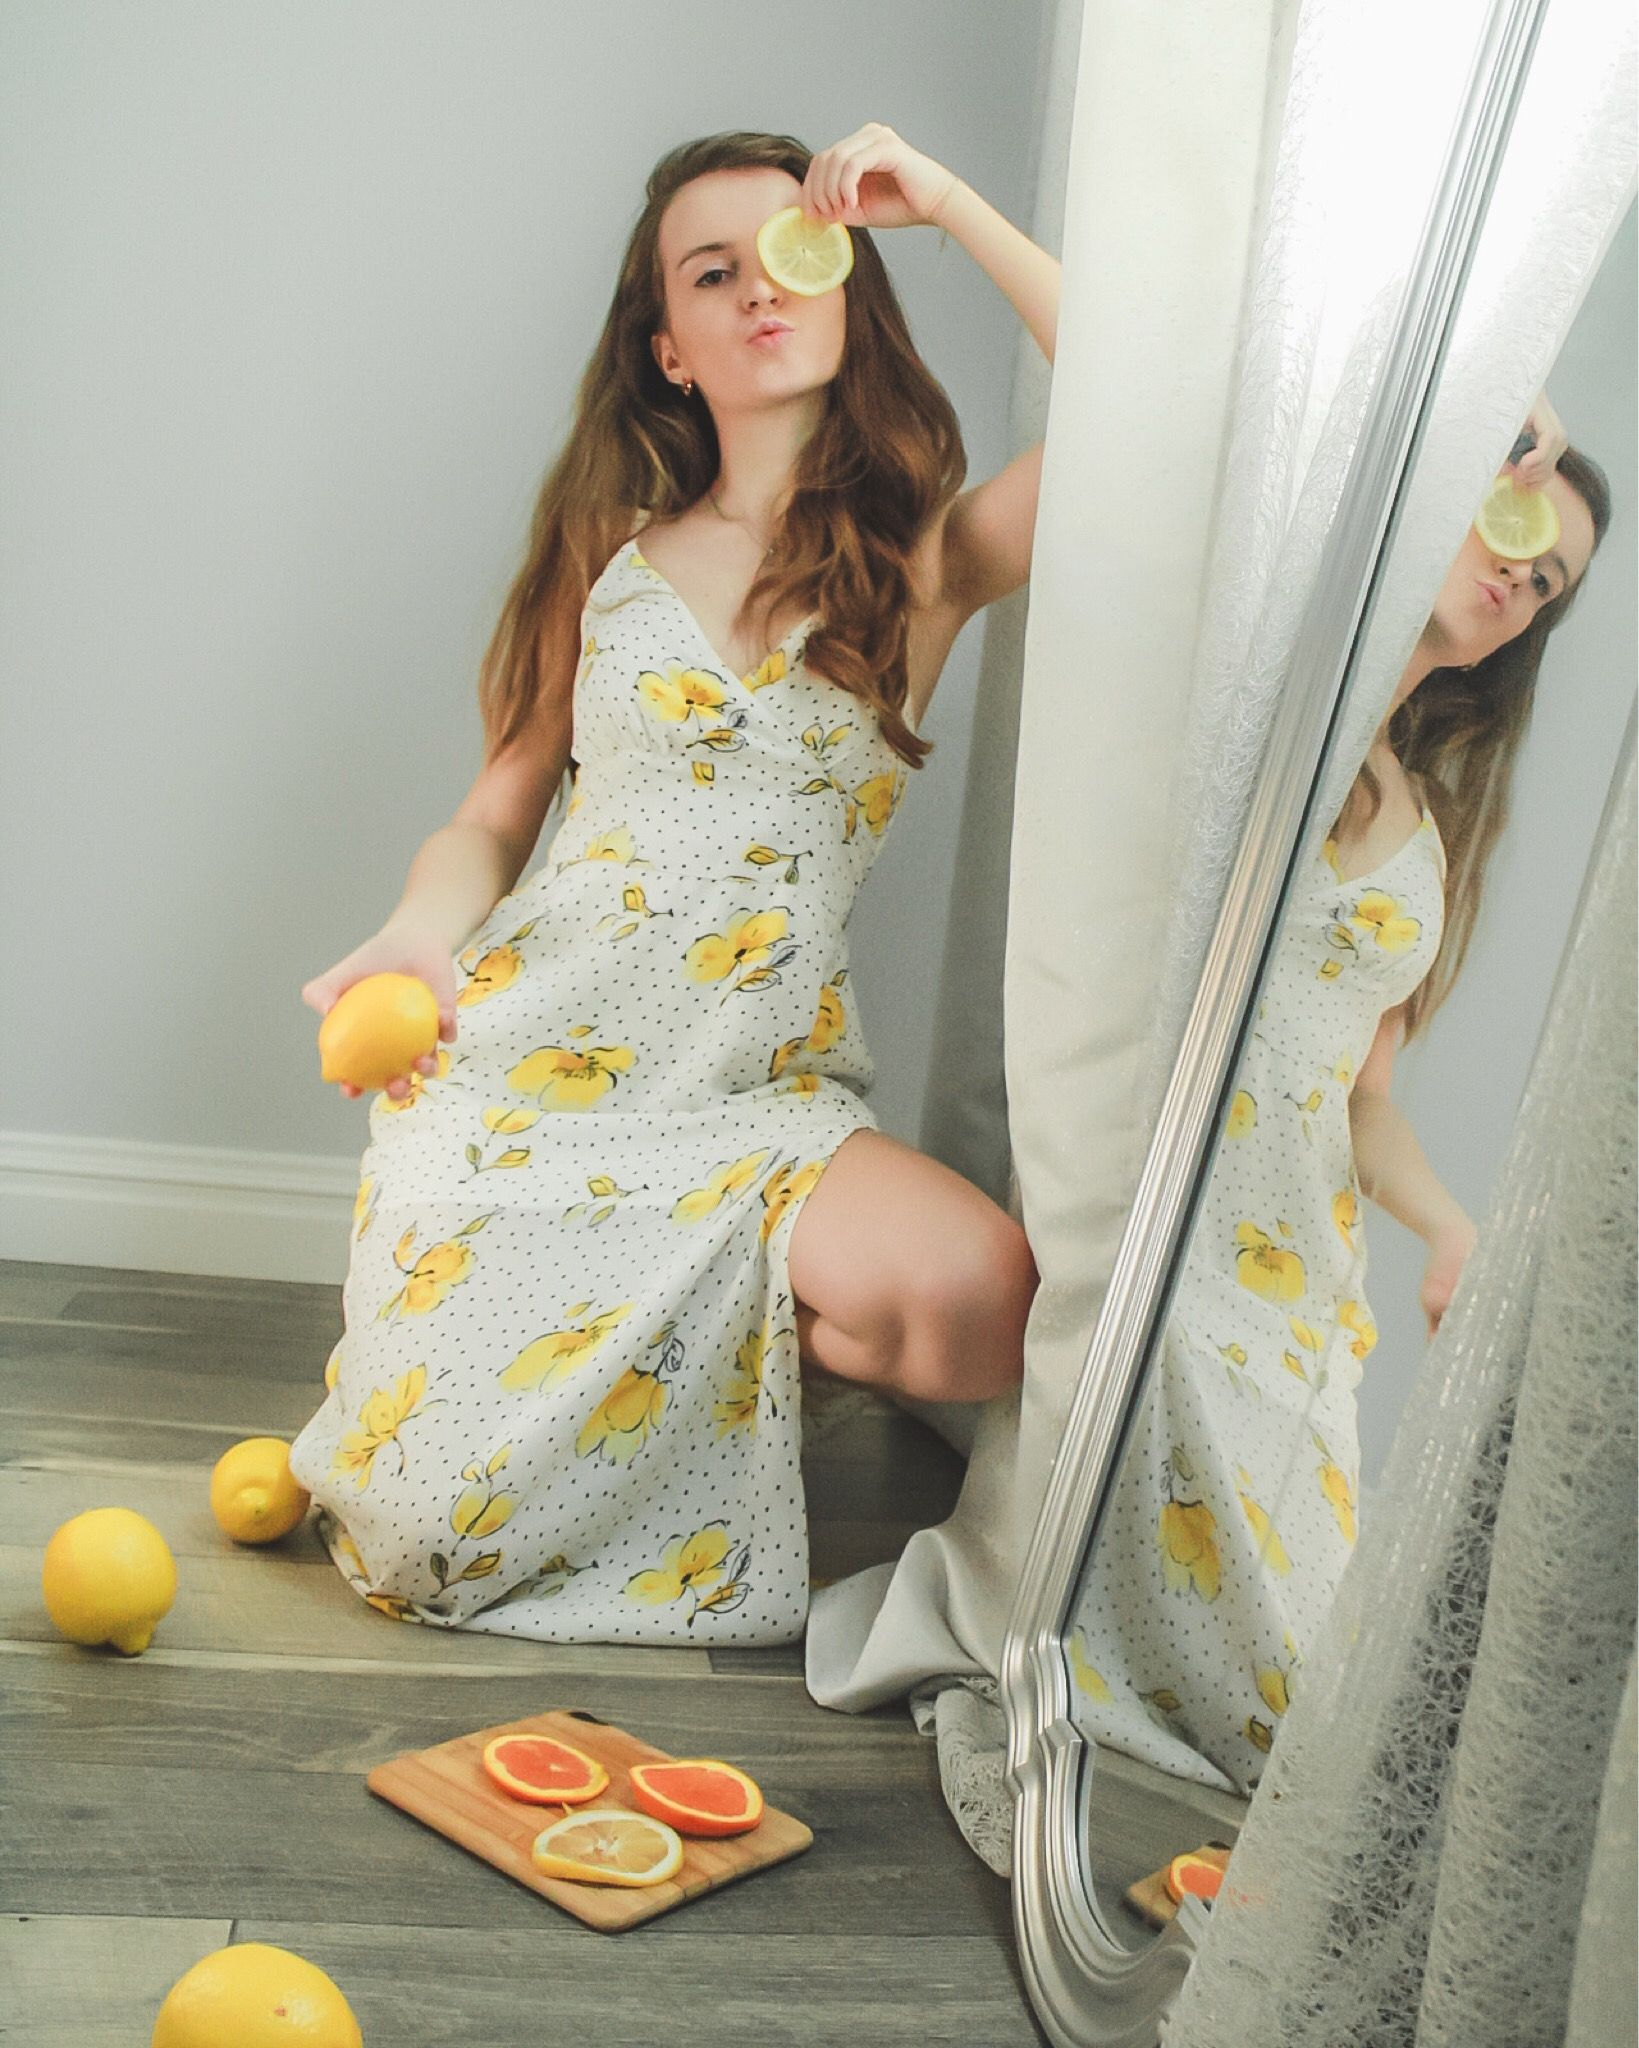 Home Photoshoot In 2020 Photoshoot Outfits Photoshoot Indoor Photography